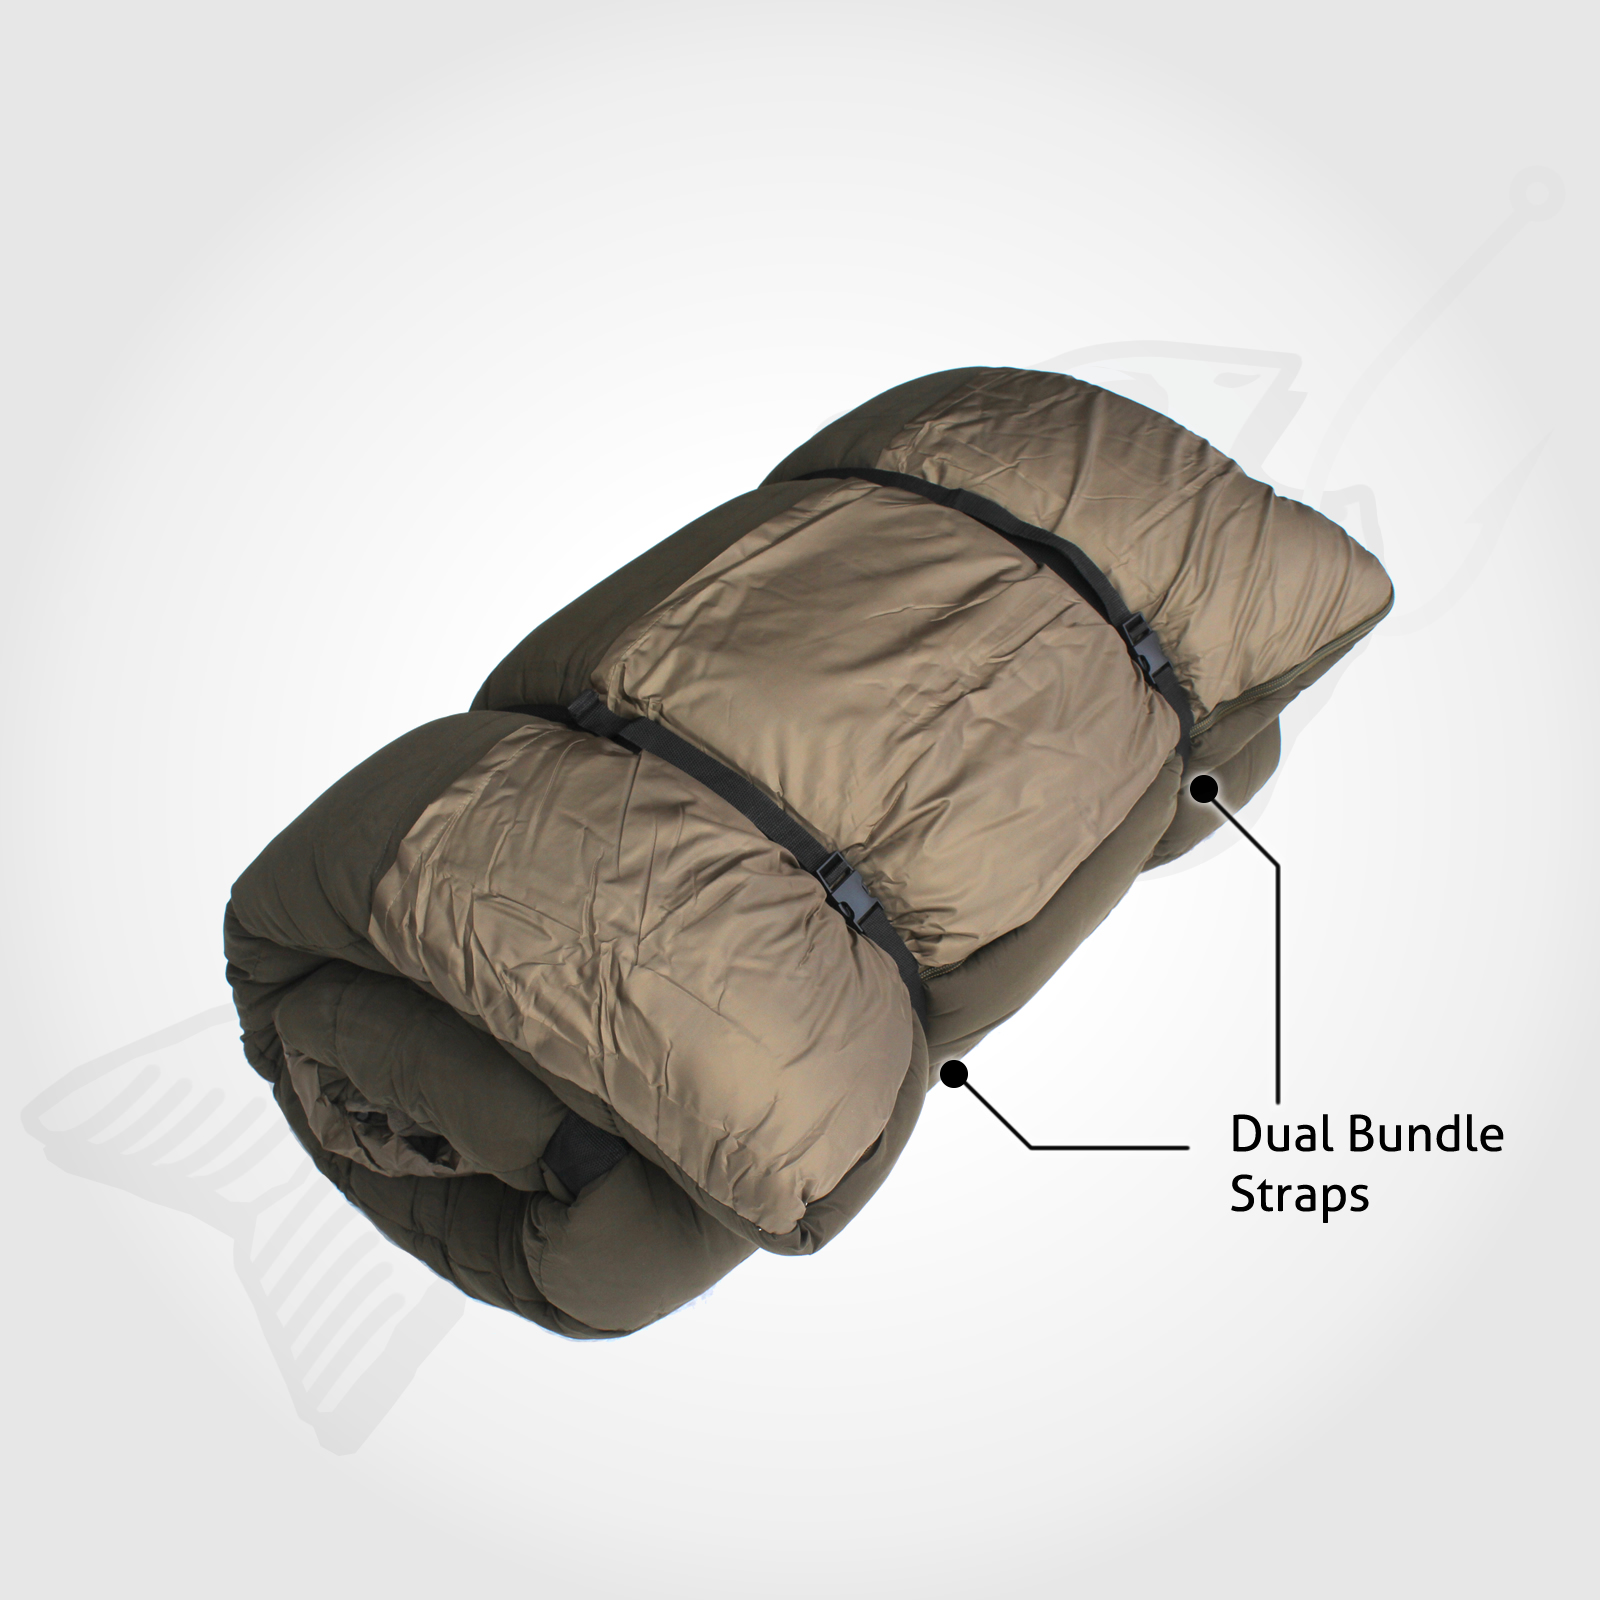 5 In 1 Double Outdoor Camping Sleeping Bag Thermal Winter Twin 15C XL